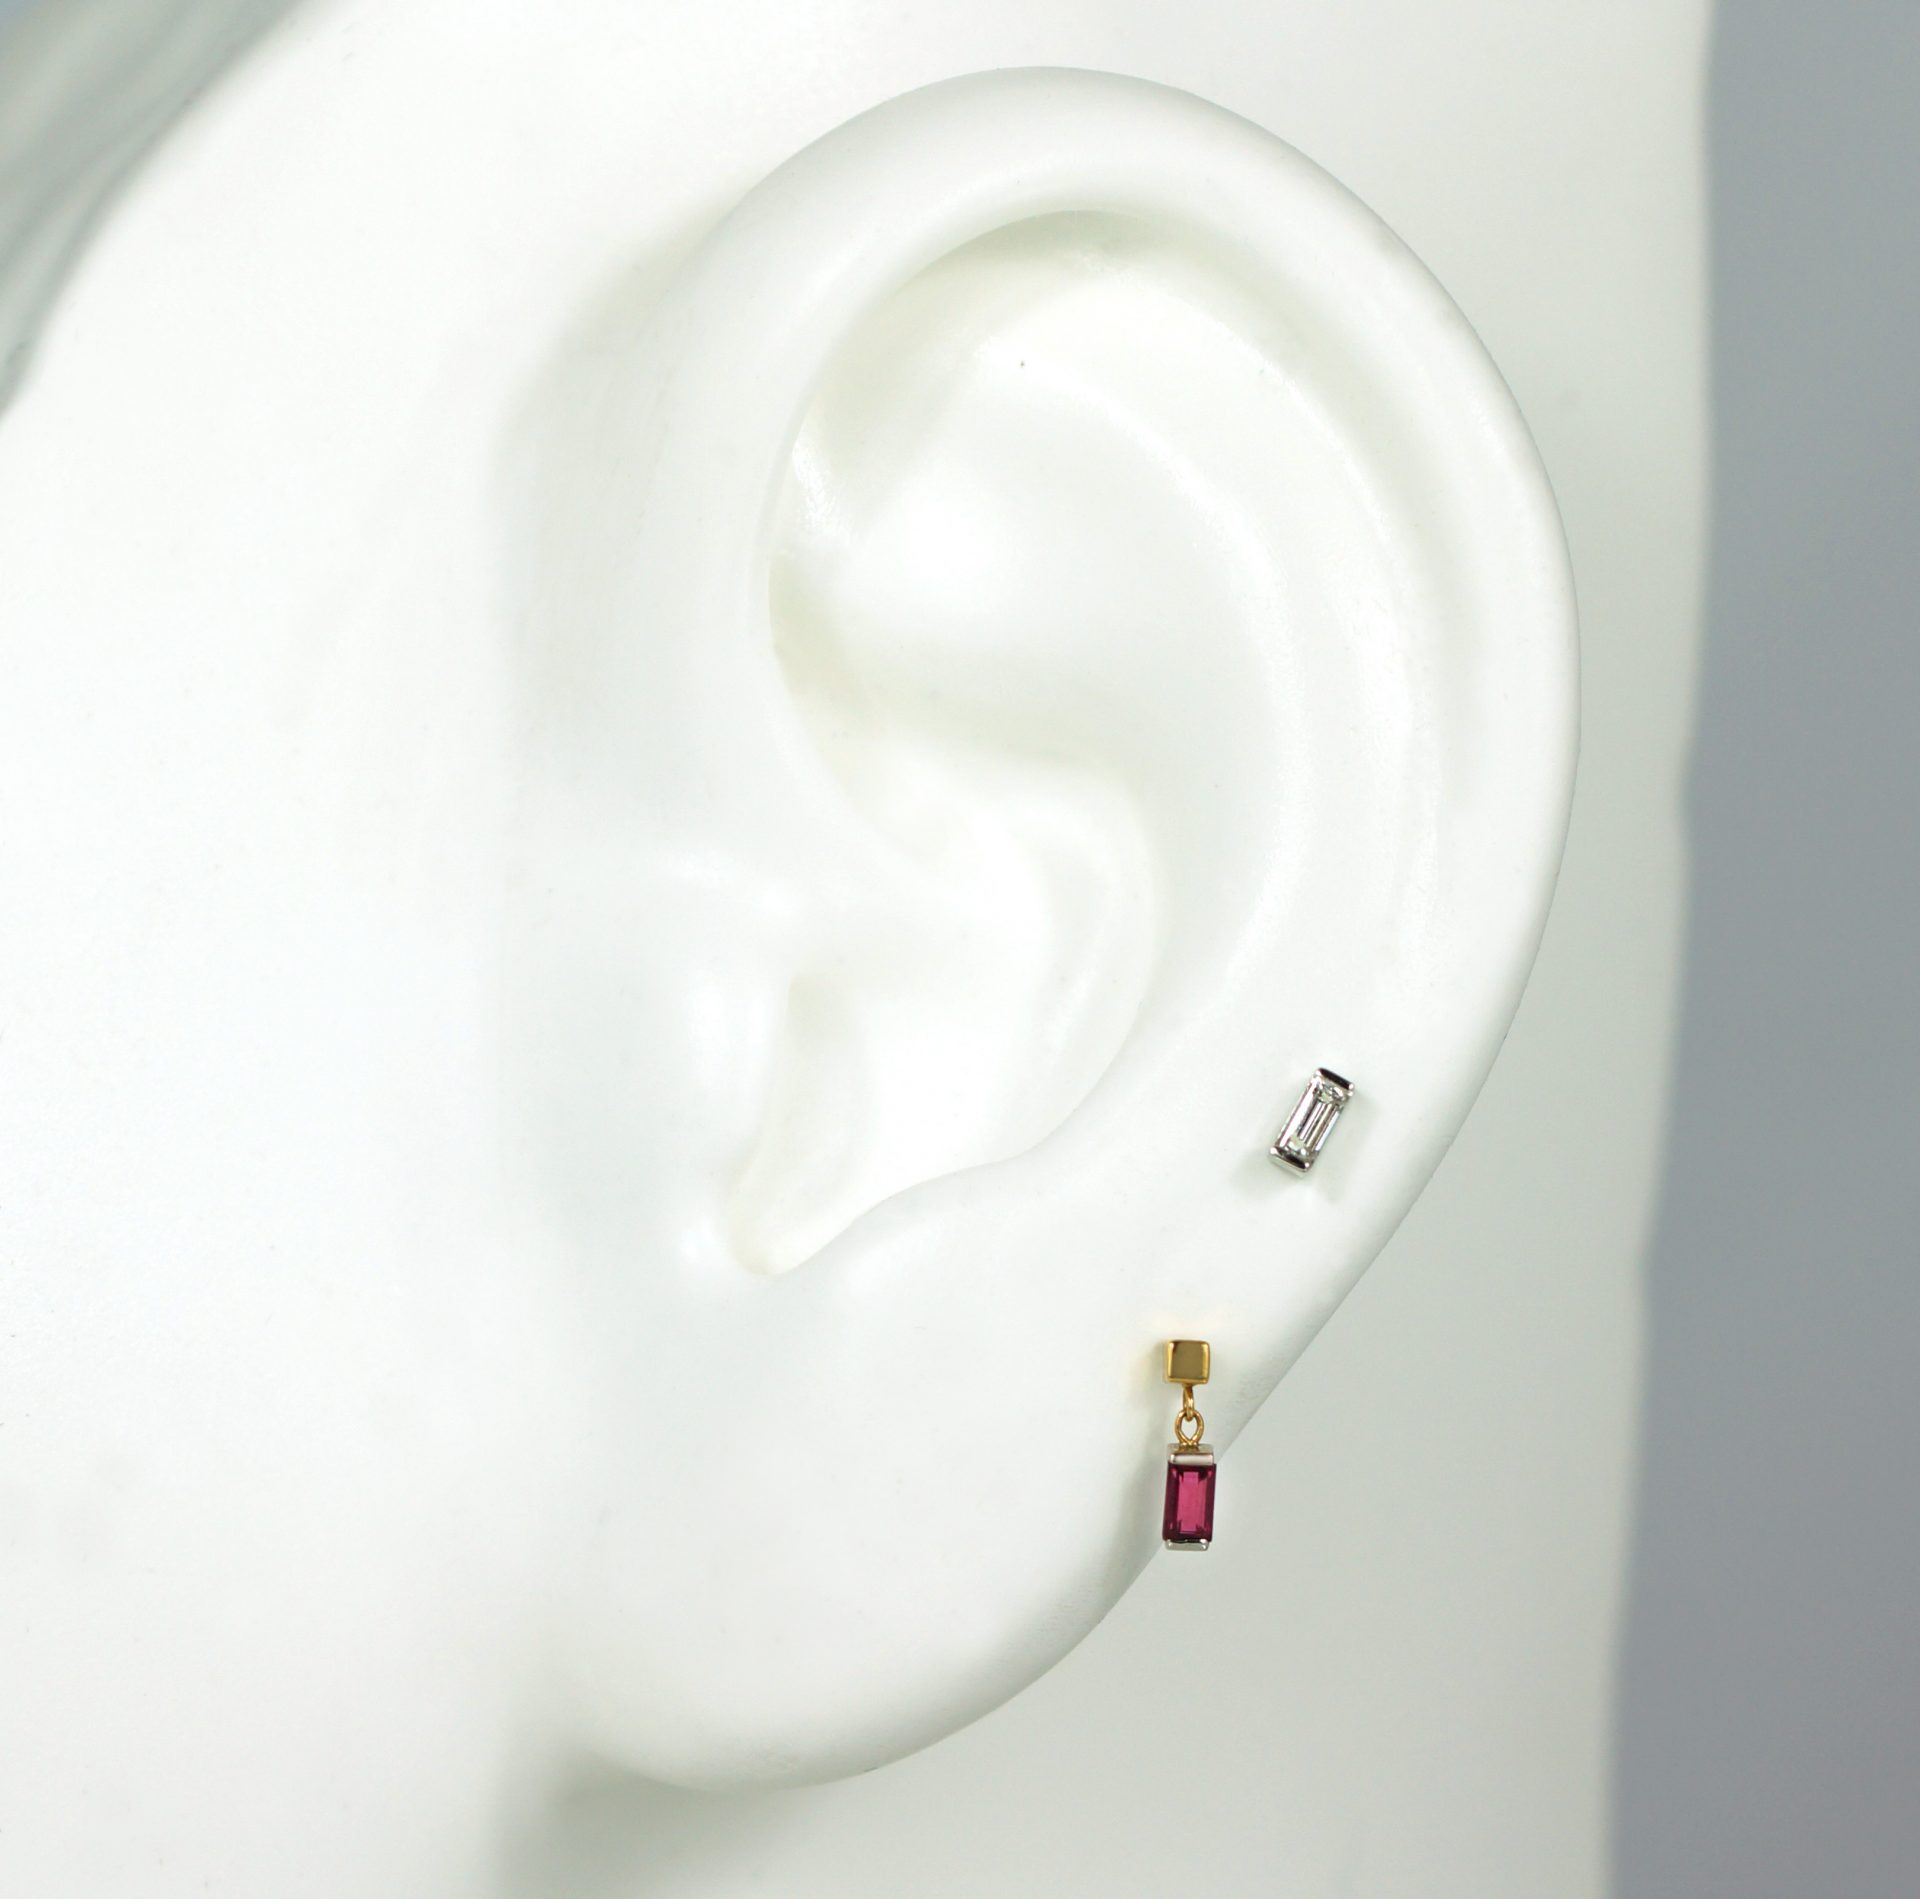 Multi-buy-Option-get–set-of-luxury-piercing-earrings-for-a-better-price.-Save-£-on-these-18k-gold-luxury-piercing-cartilage-studs